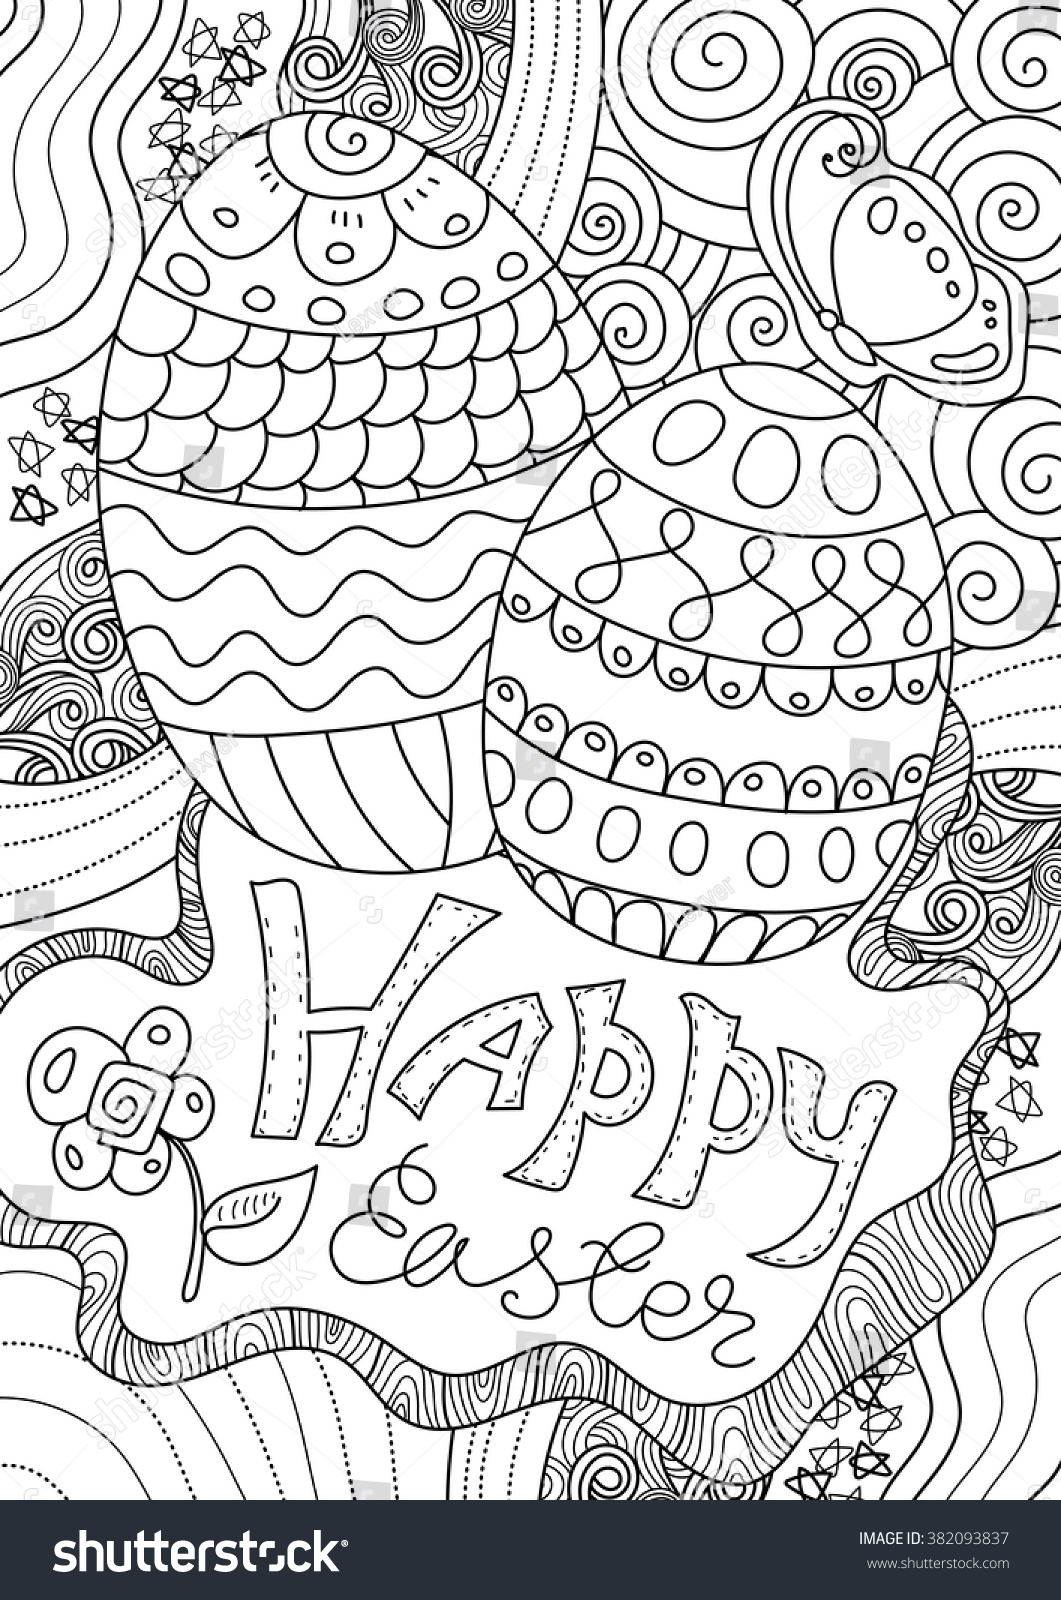 Happy Easter Coloring Book Page For Adult And Kids A4 Format